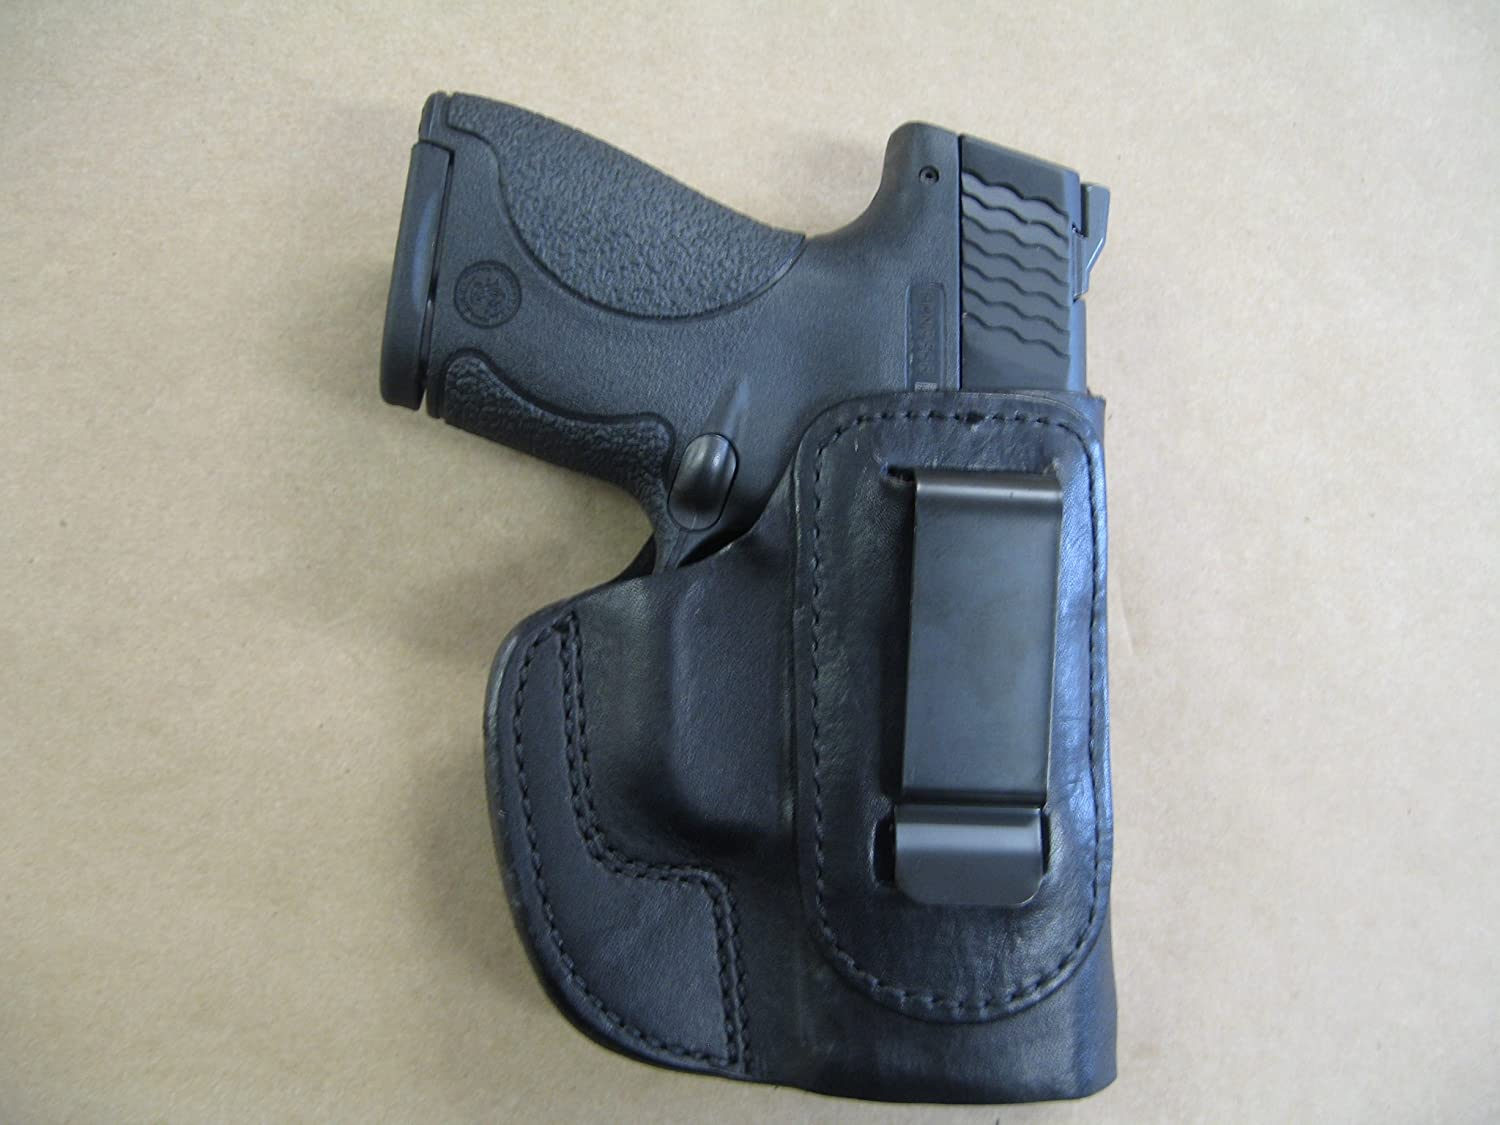 Ruger SR9c SR40c 9mm / 40 IWB Leather In The Waistband Concealed Carry  Holster BLACK RH